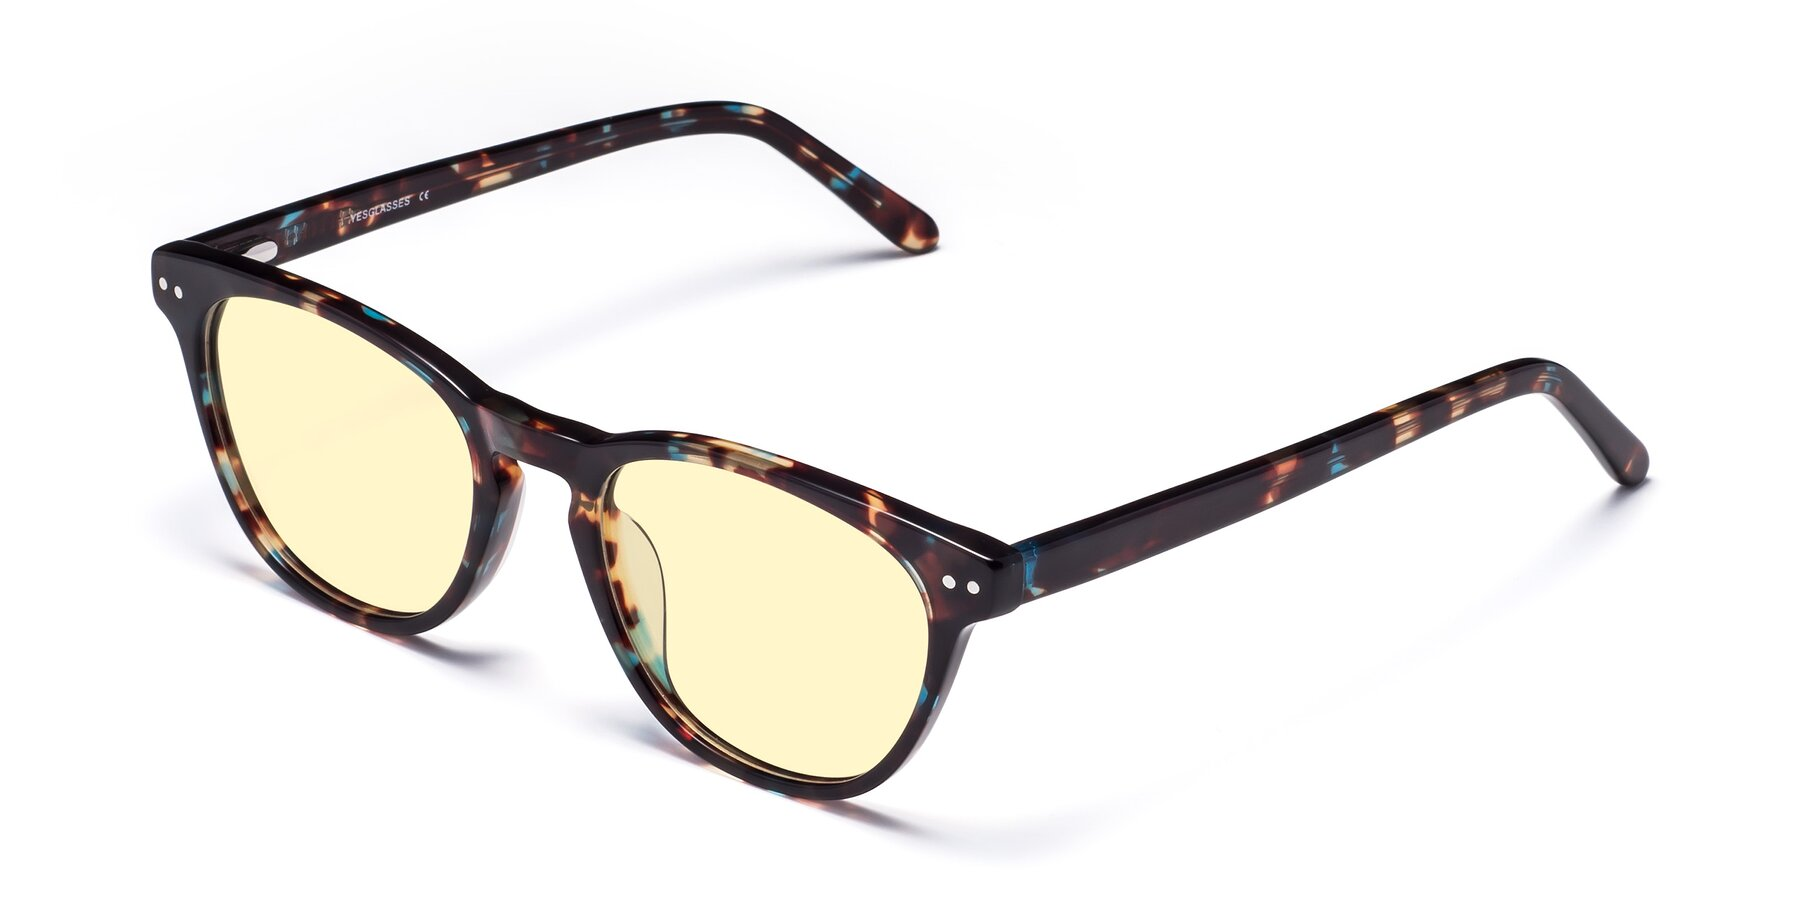 Angle of Blaze in Tortoise-Blue with Light Yellow Tinted Lenses